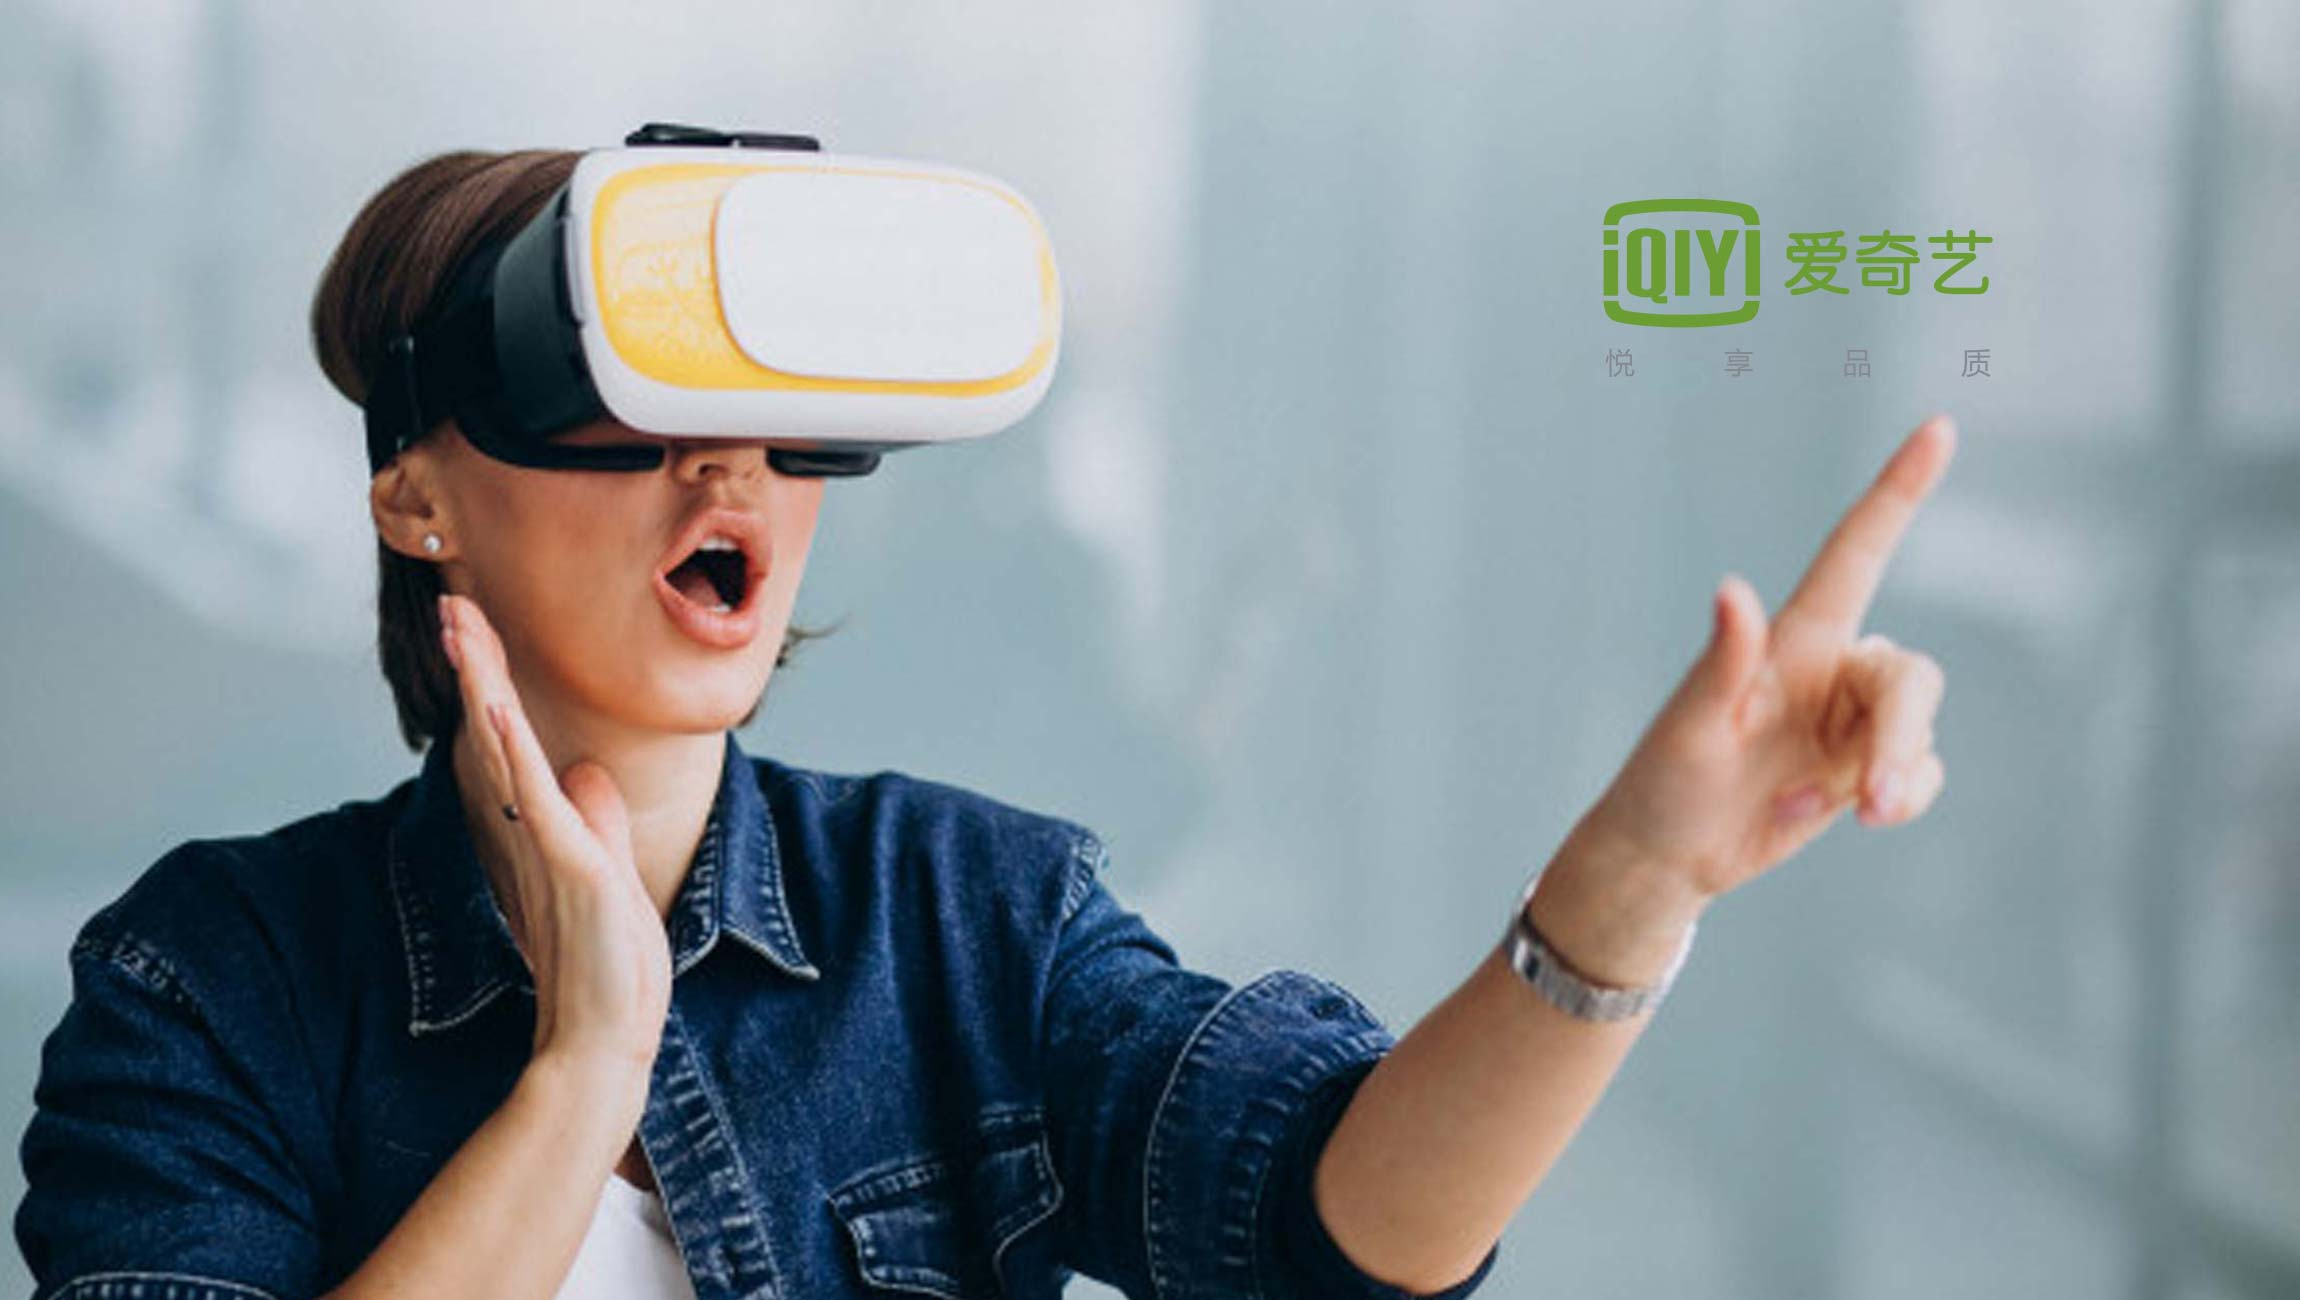 iQIYI's VR Startup Completes Series B Funding Round to Drive Innovation and Expand Content Ecosystem 1